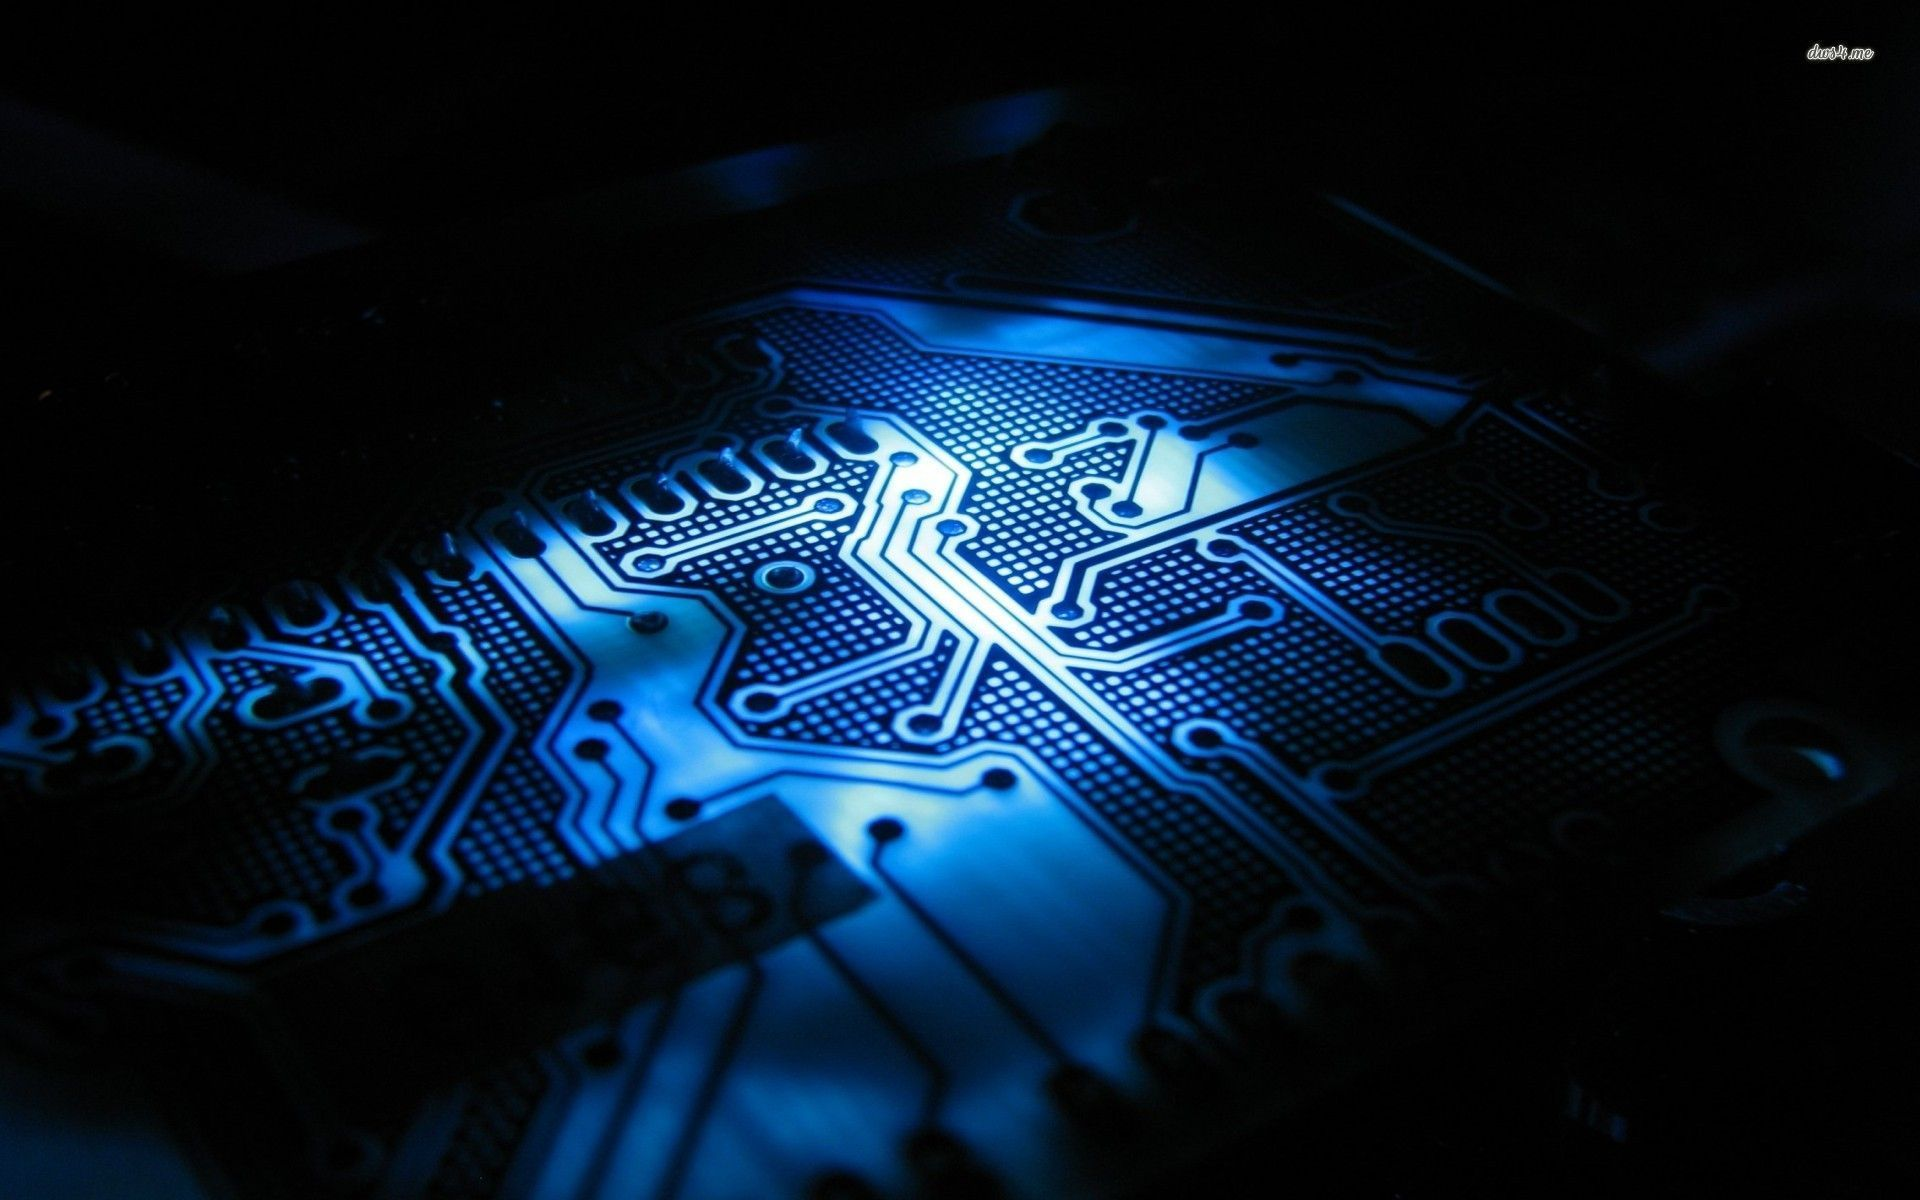 circuit hd wallpapers backgrounds wallpaper 1024 576 circuit board rh pinterest com Circuit Board Wallpaper 4K Circuit Board Wallpaper 1920X1440